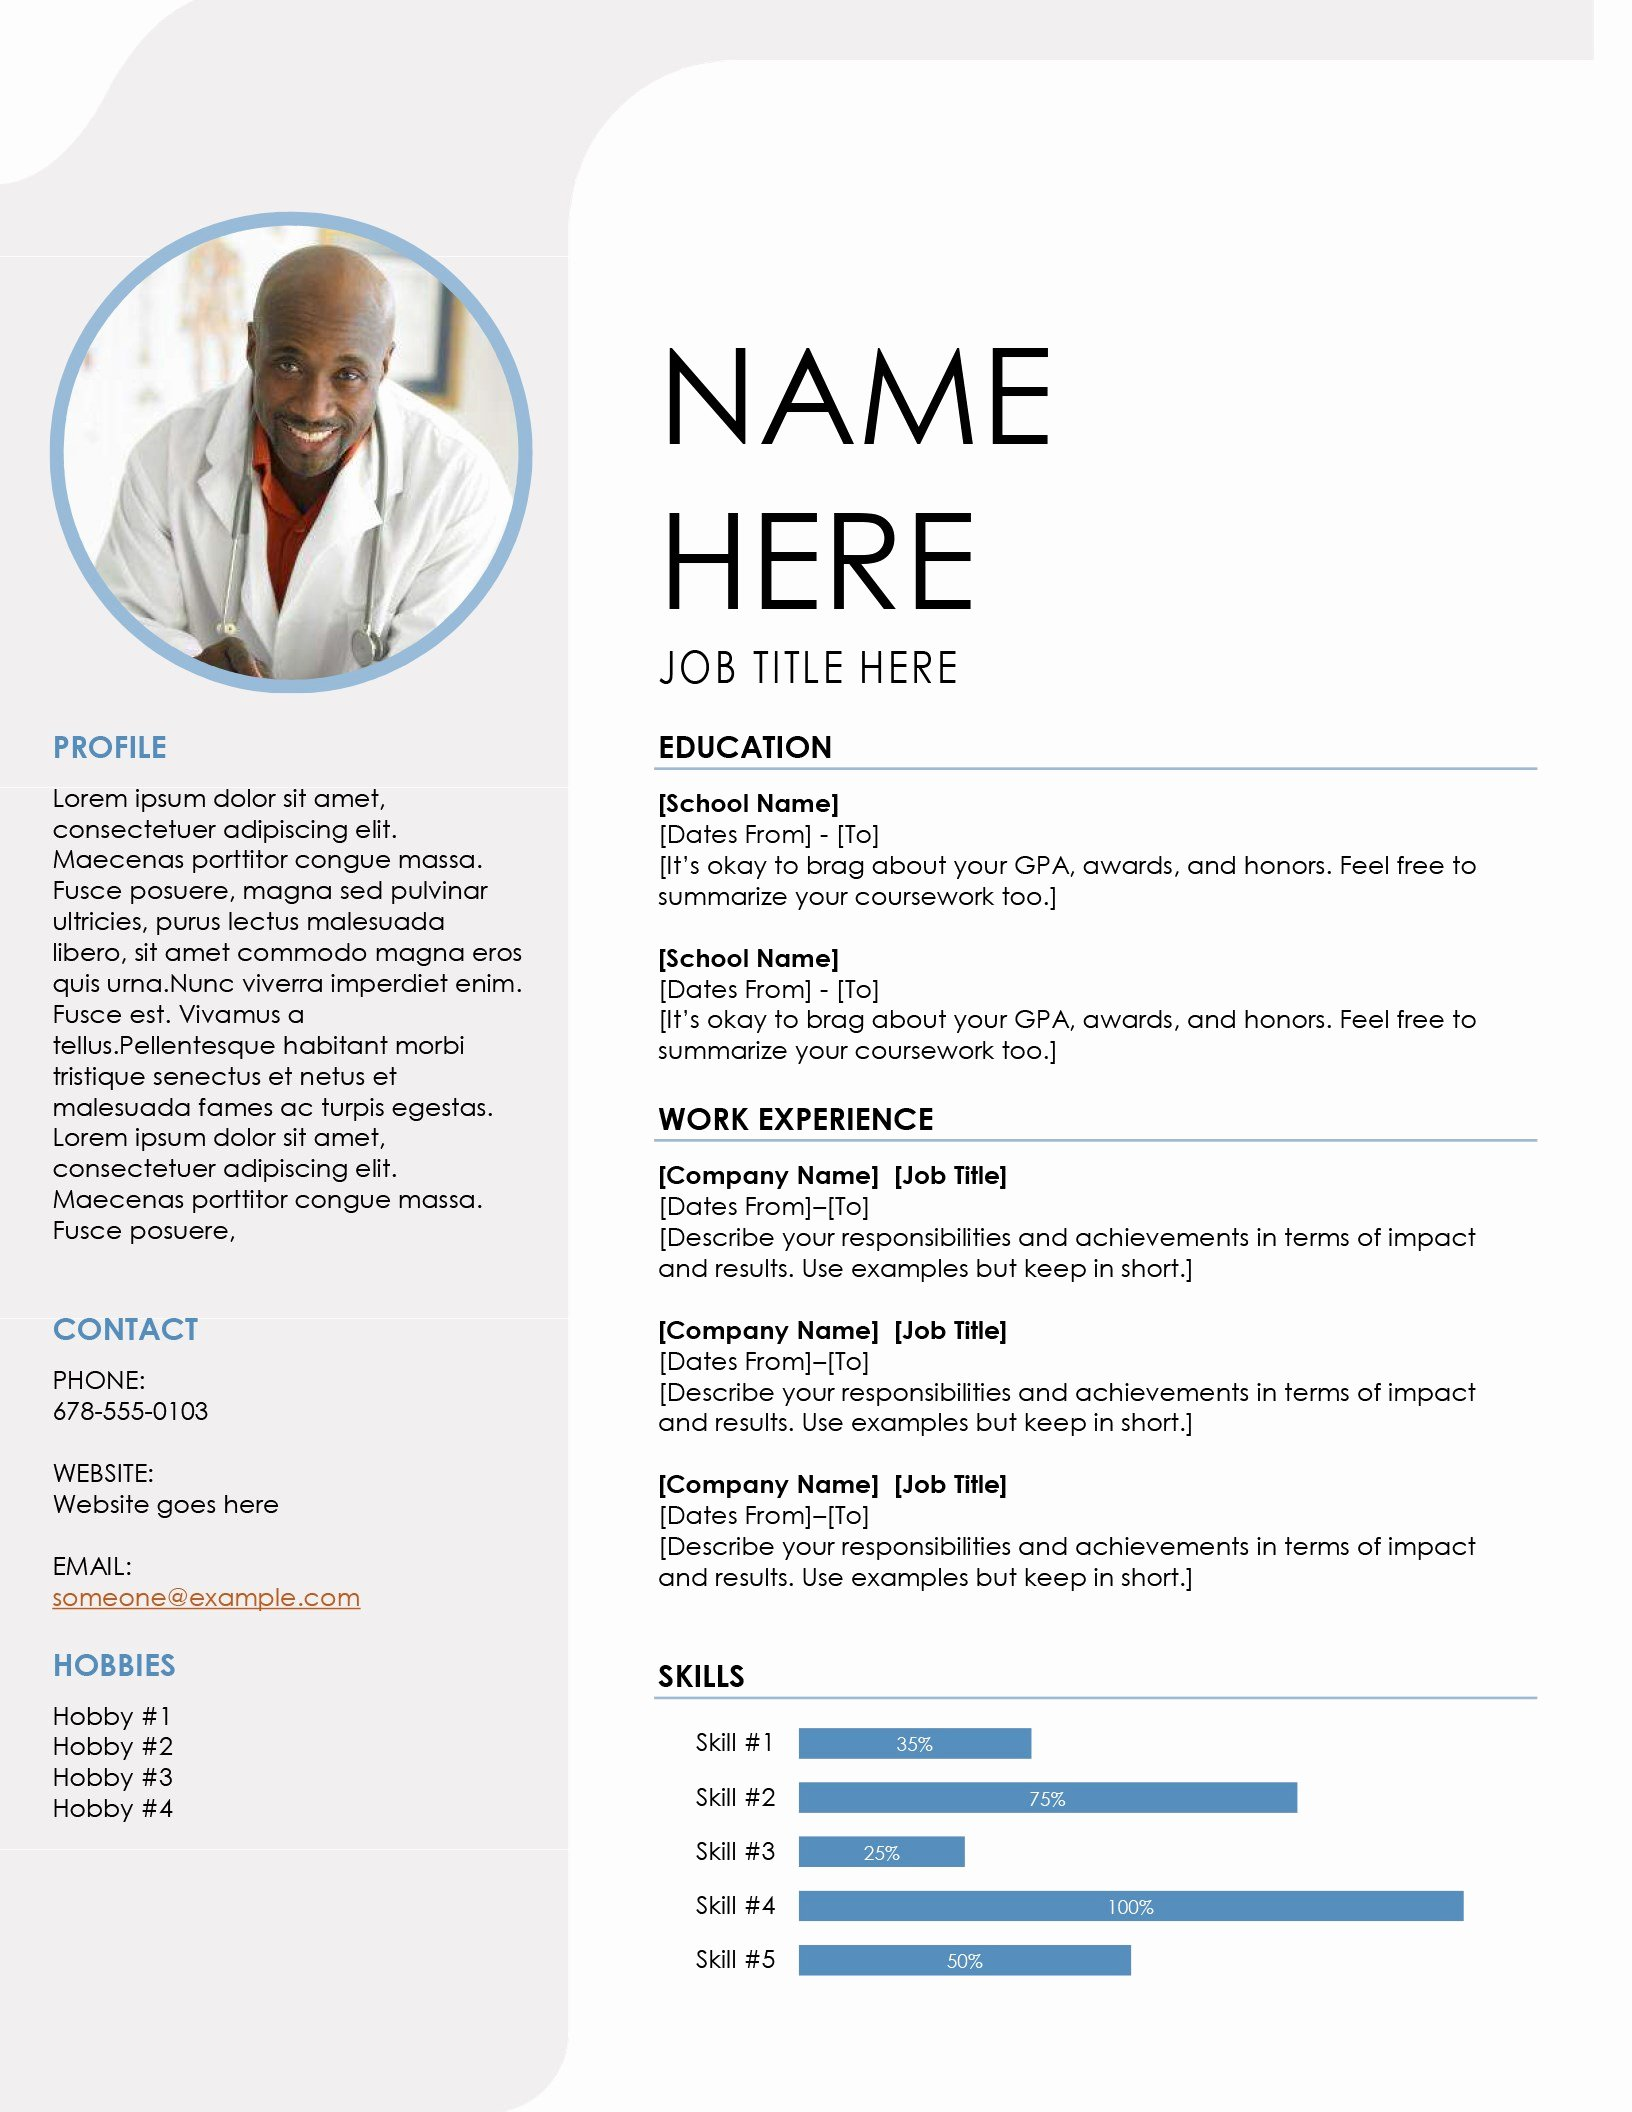 Microsoft Word Resume Example Lovely Resumes and Cover Letters Fice